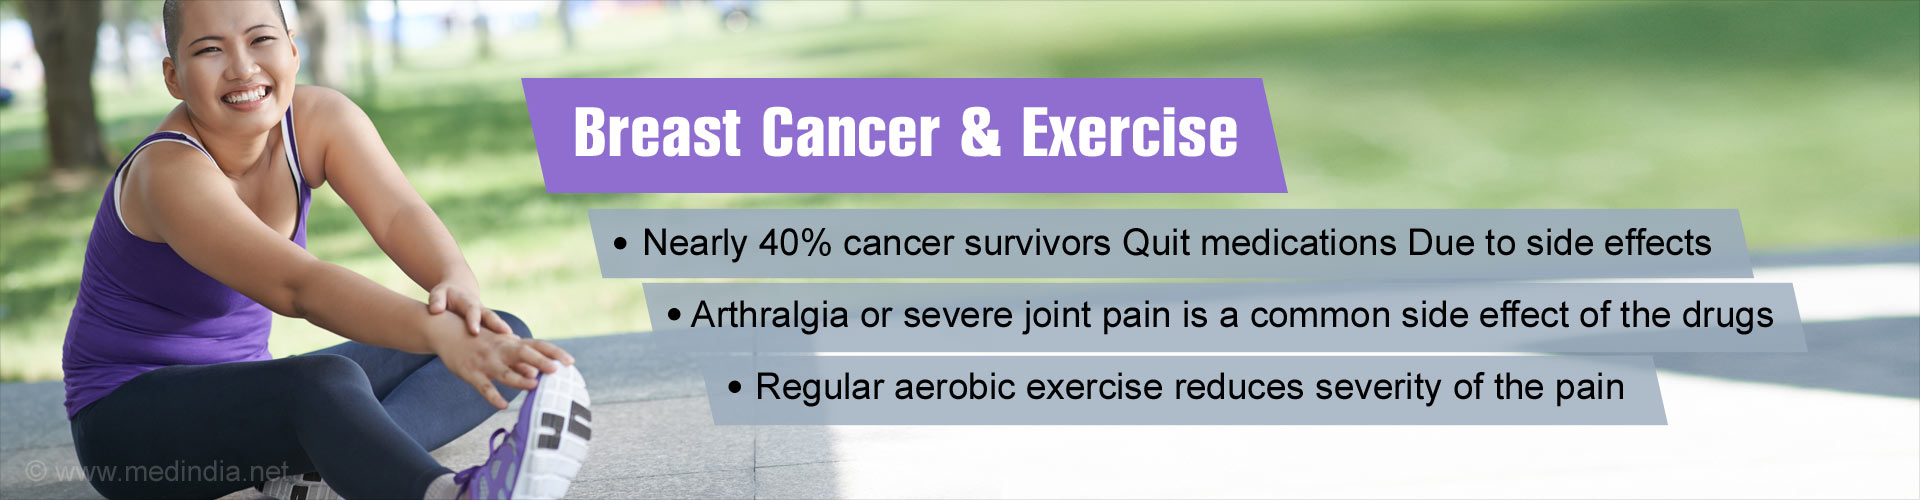 Breast Cancer & Exercise